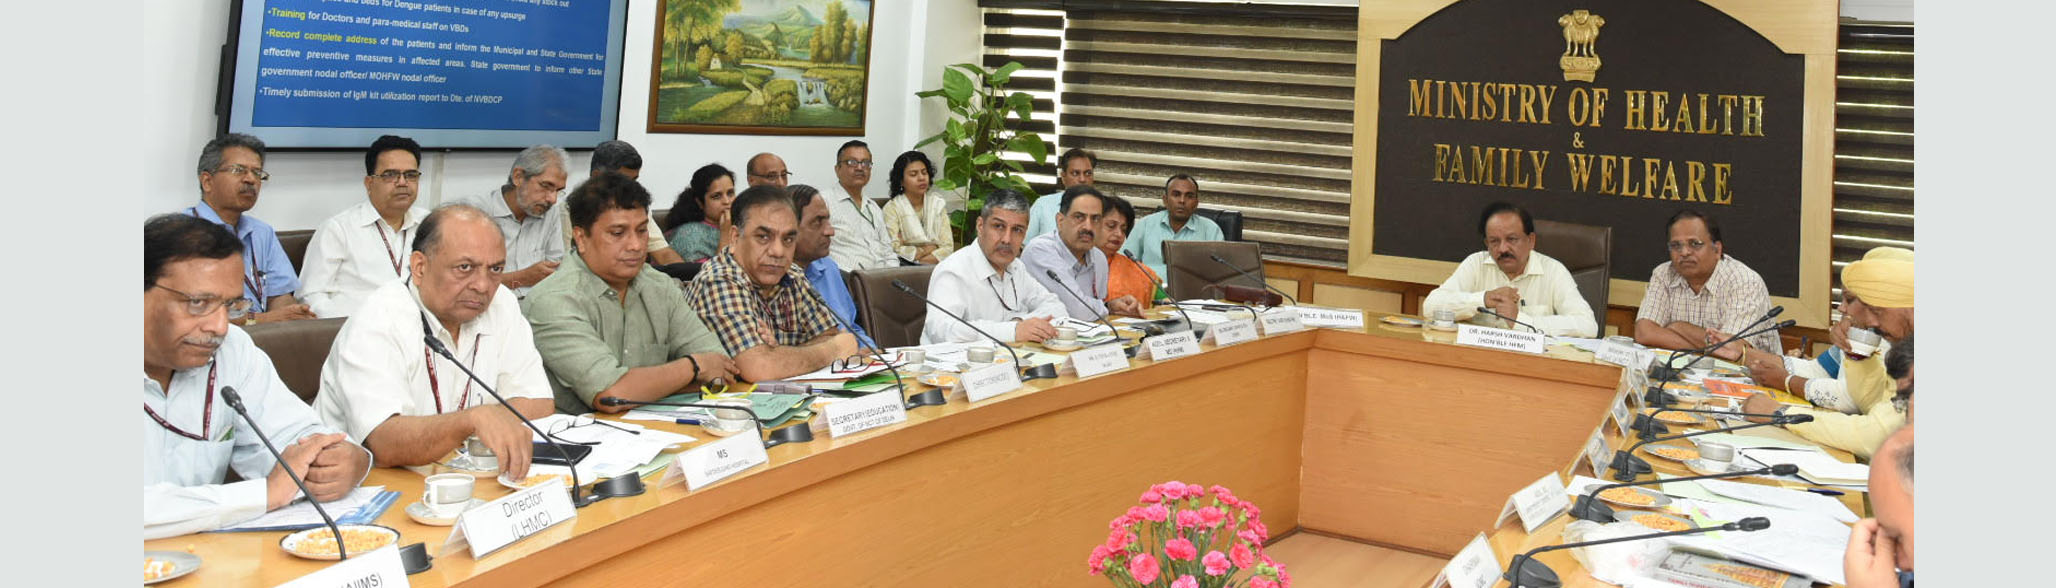 Meeting on Vector Borne Diseases in Delhi Status Preparedness